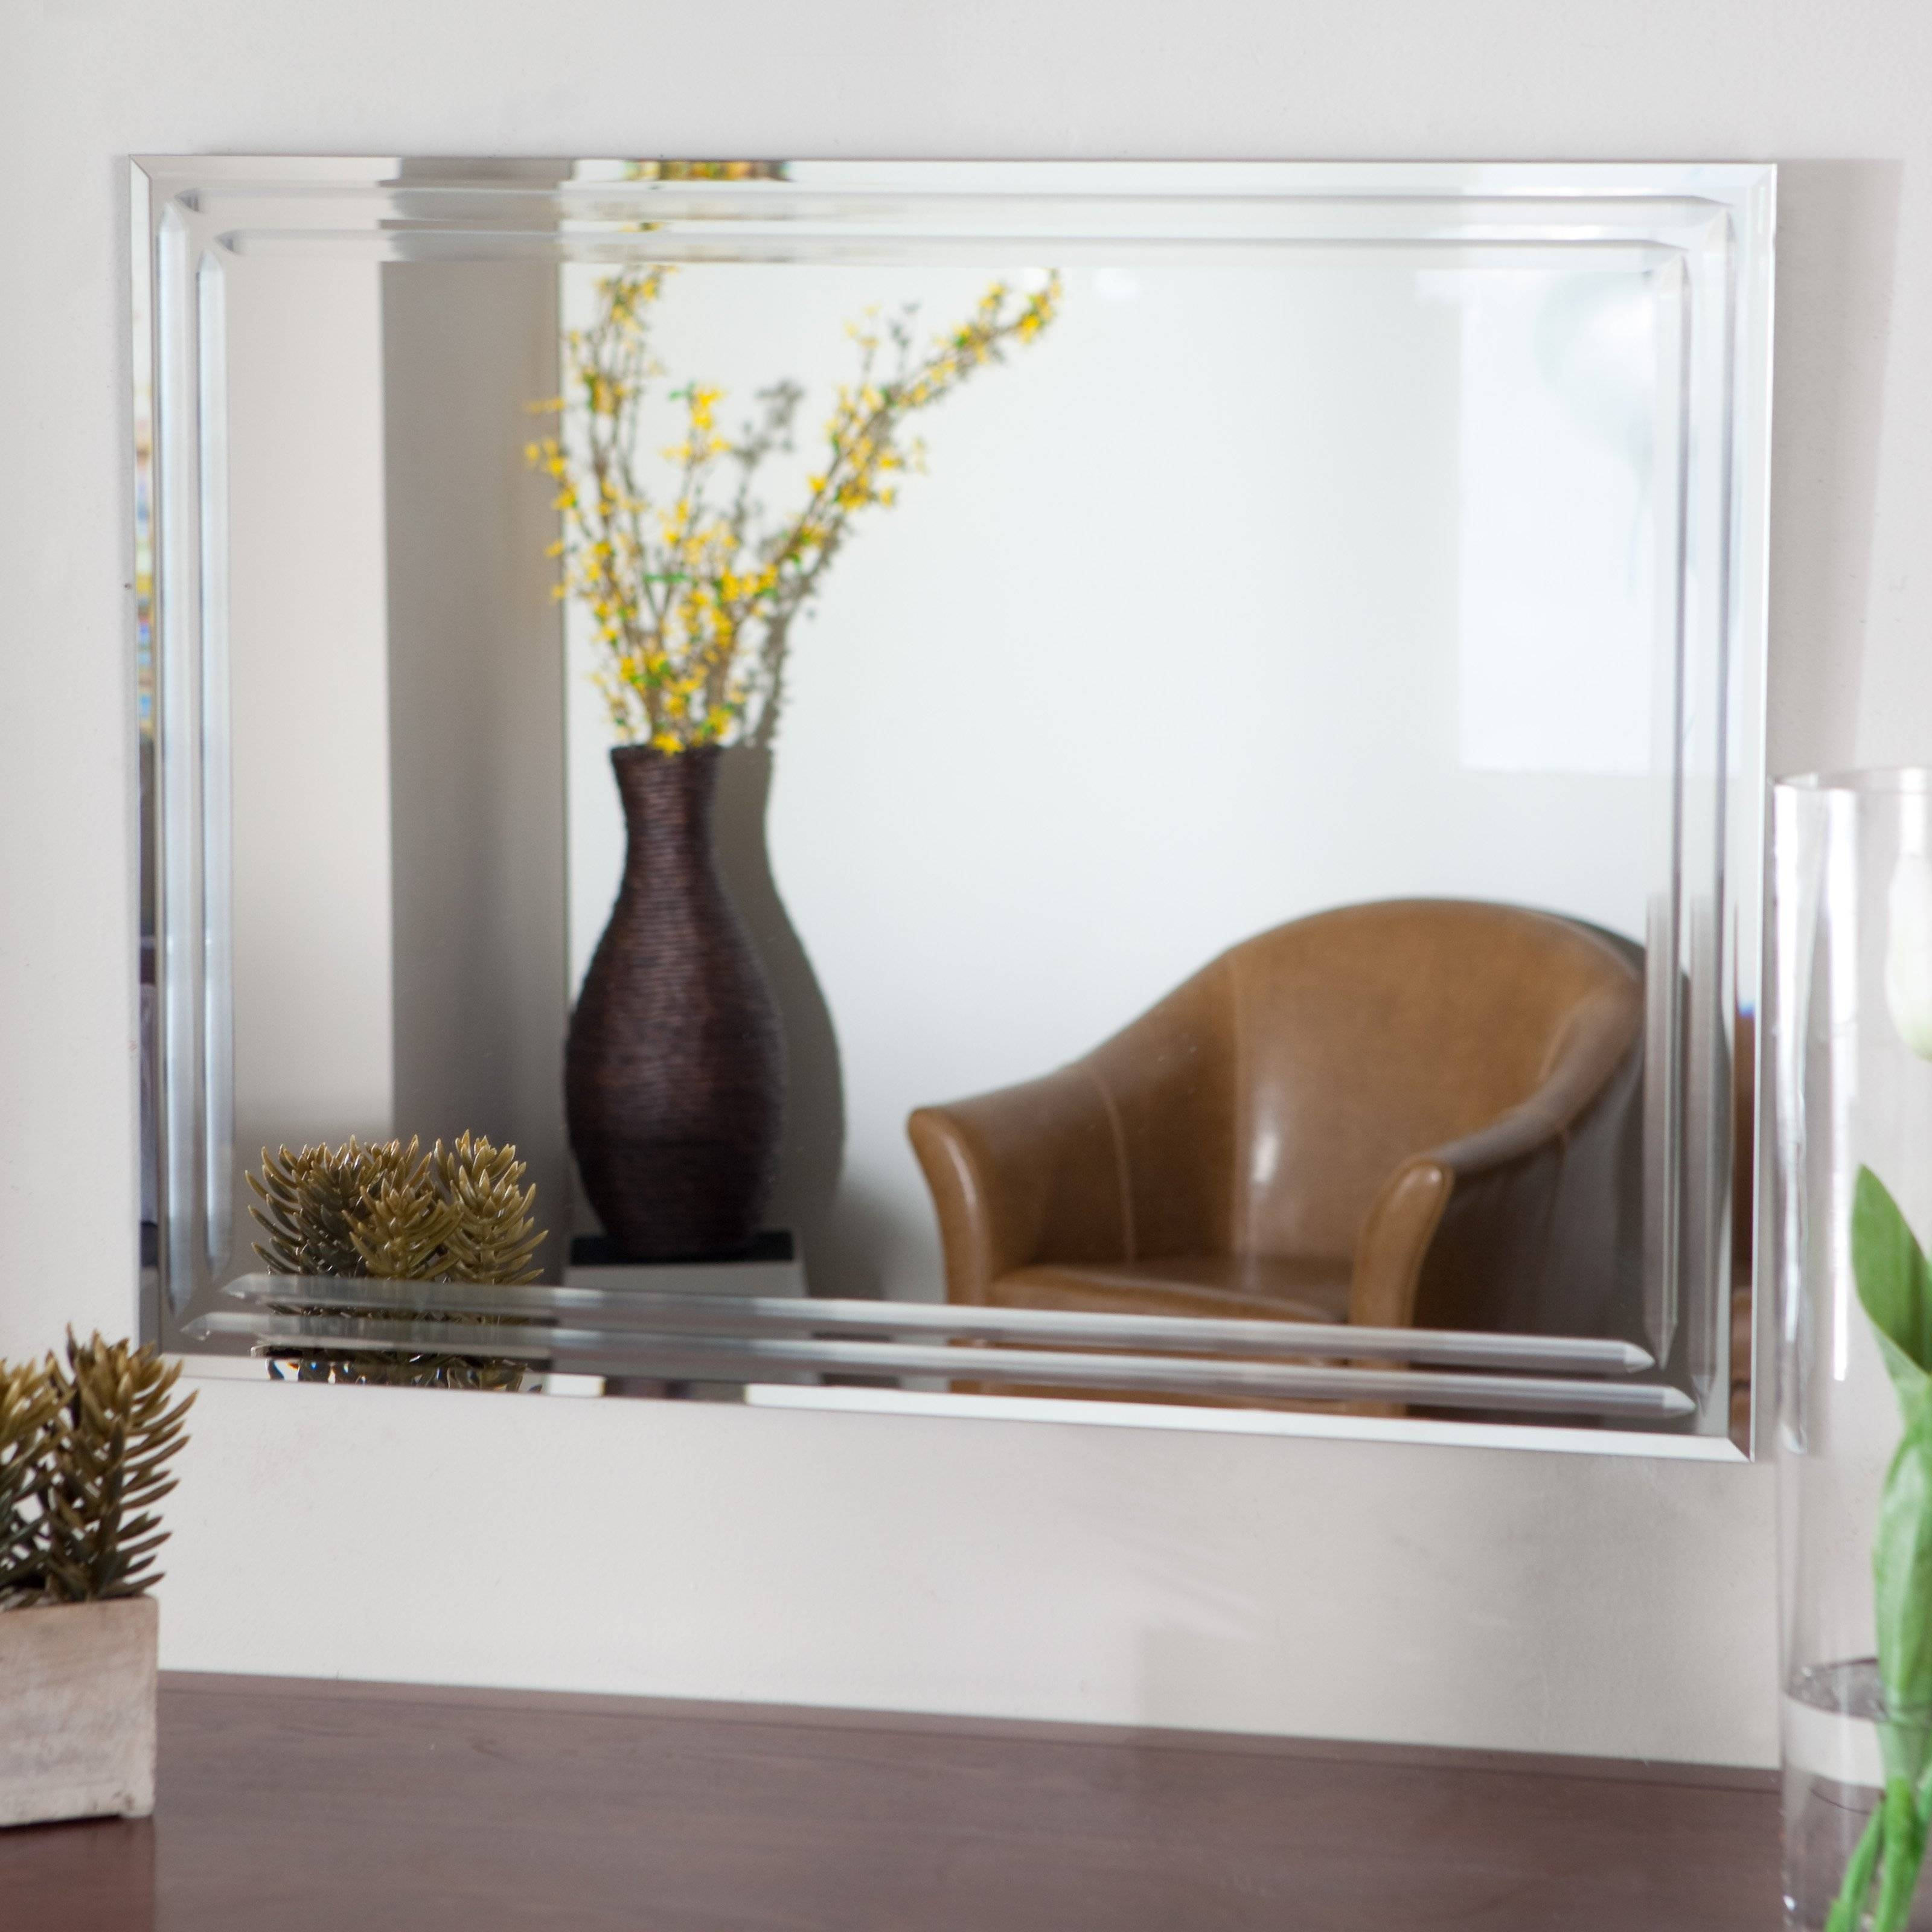 Large Frameless Wall Mirrors – Harpsounds.co regarding Large Frameless Wall Mirrors (Image 15 of 25)